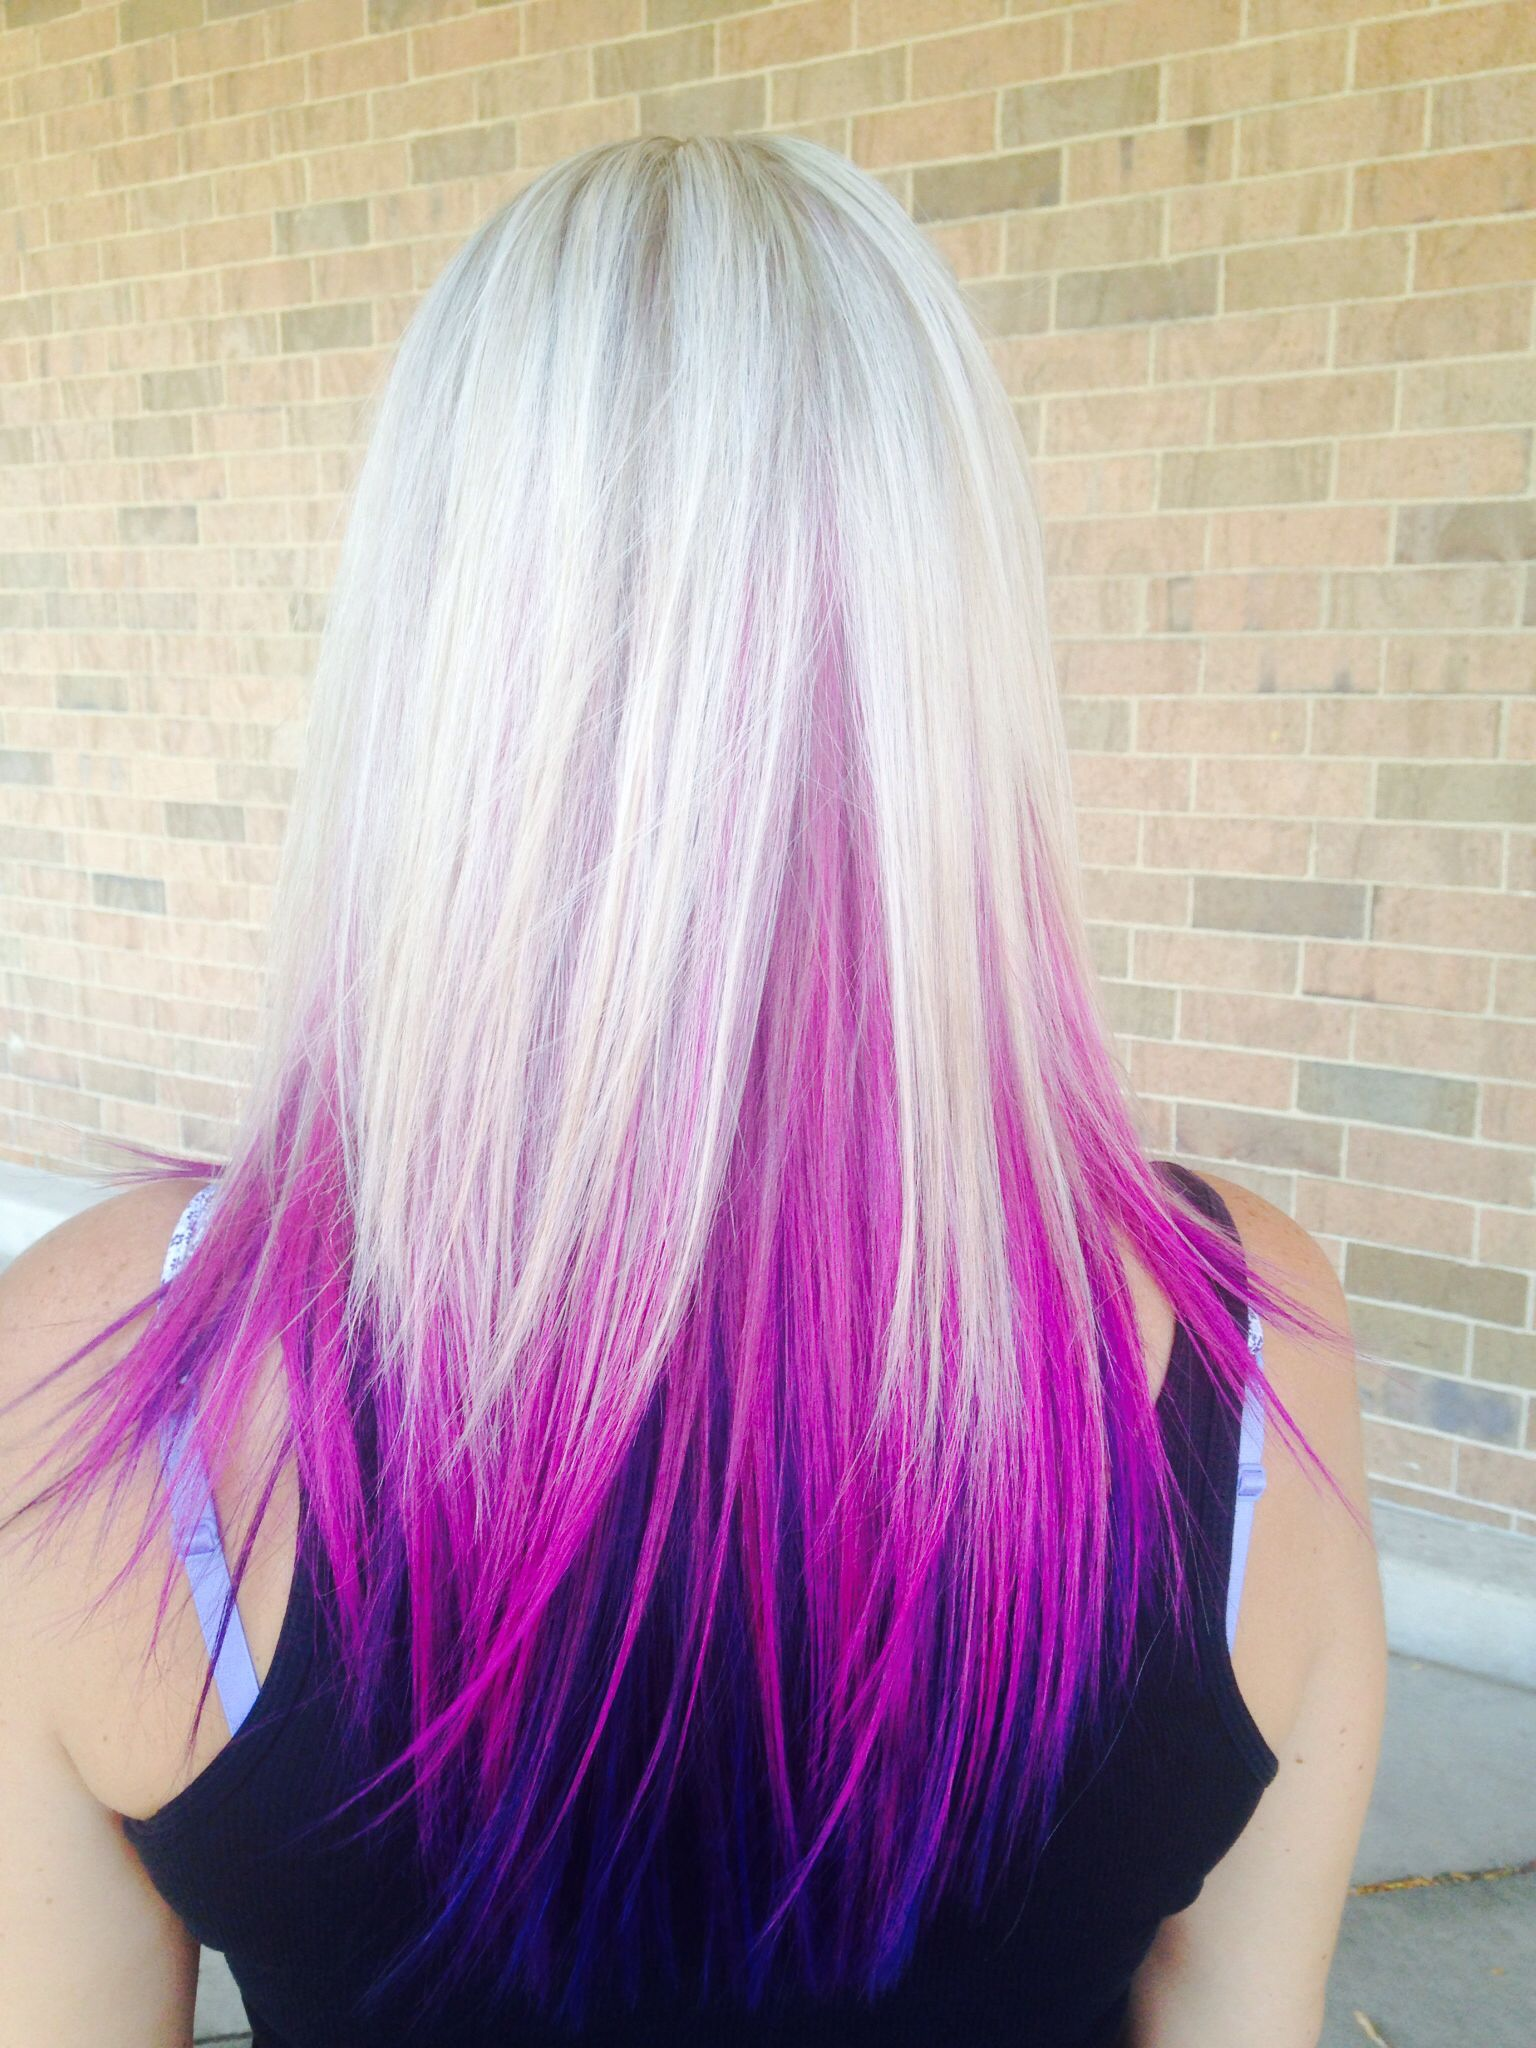 Purple pink under blonde highlight! | Stylings | Pinterest ...